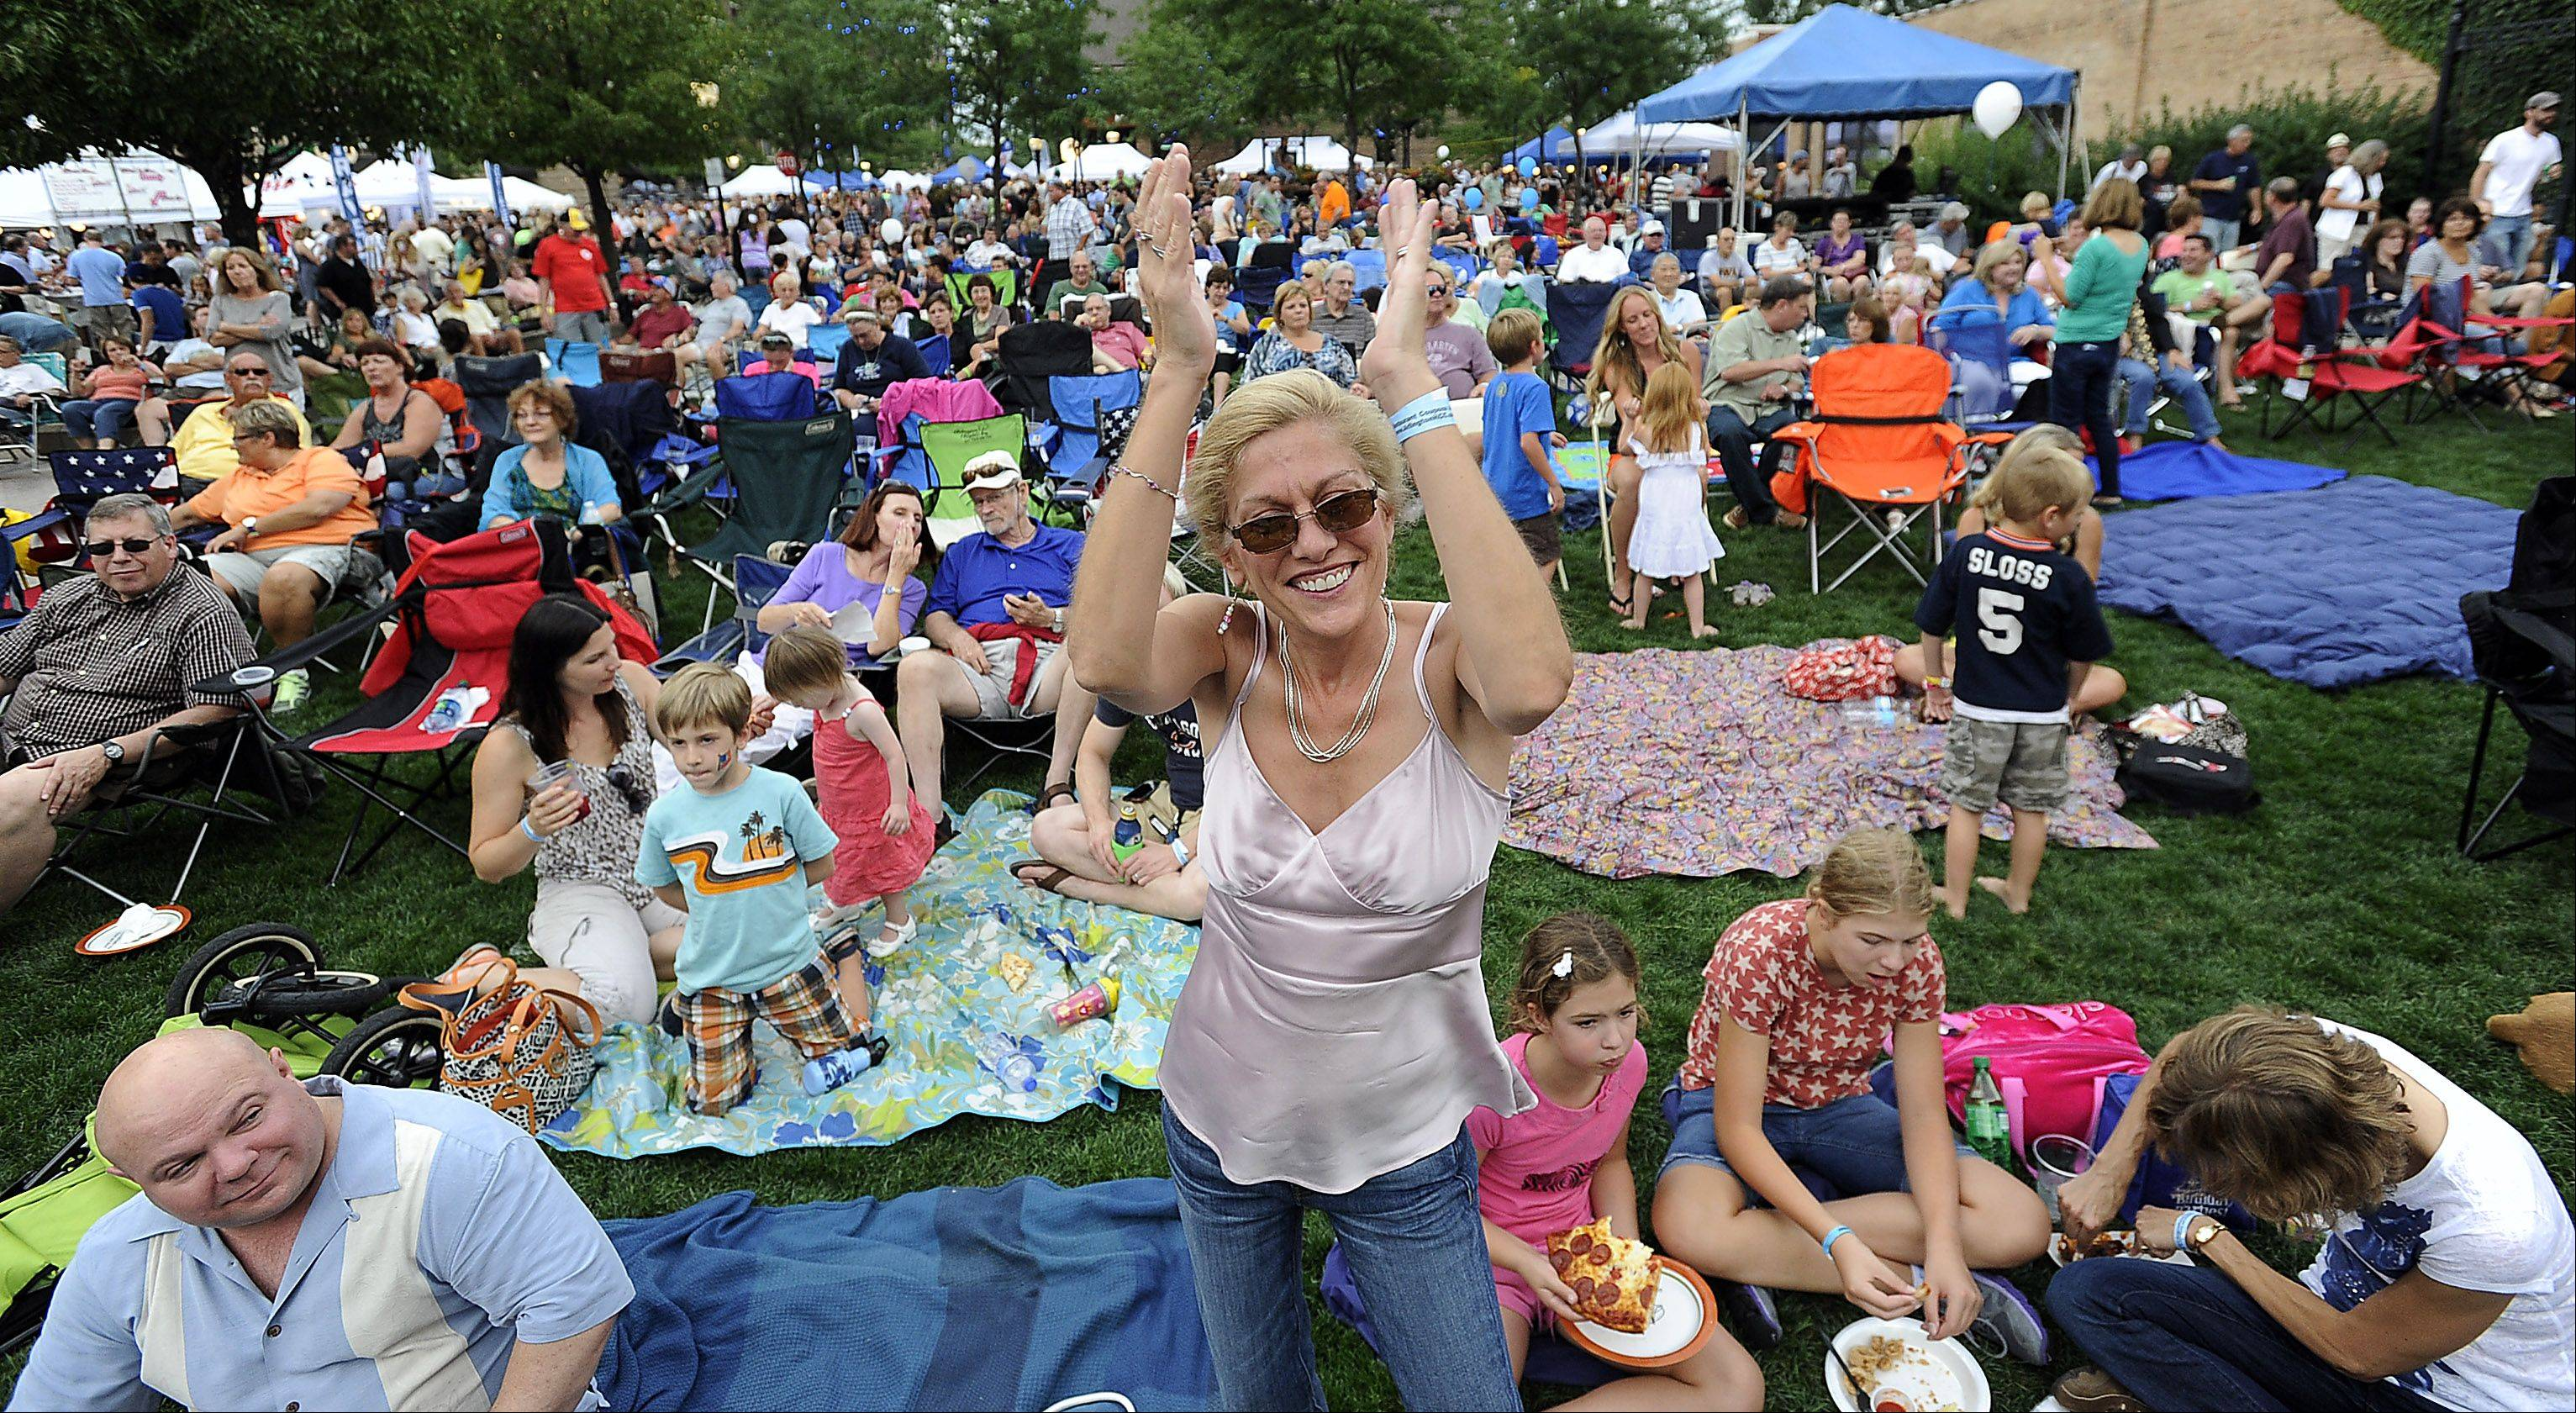 Dancing to the song Blurred Lines, Paula Euchner, of Arlington Heights, celebrates at the Mane Event in downtown Arlington Heights Friday.